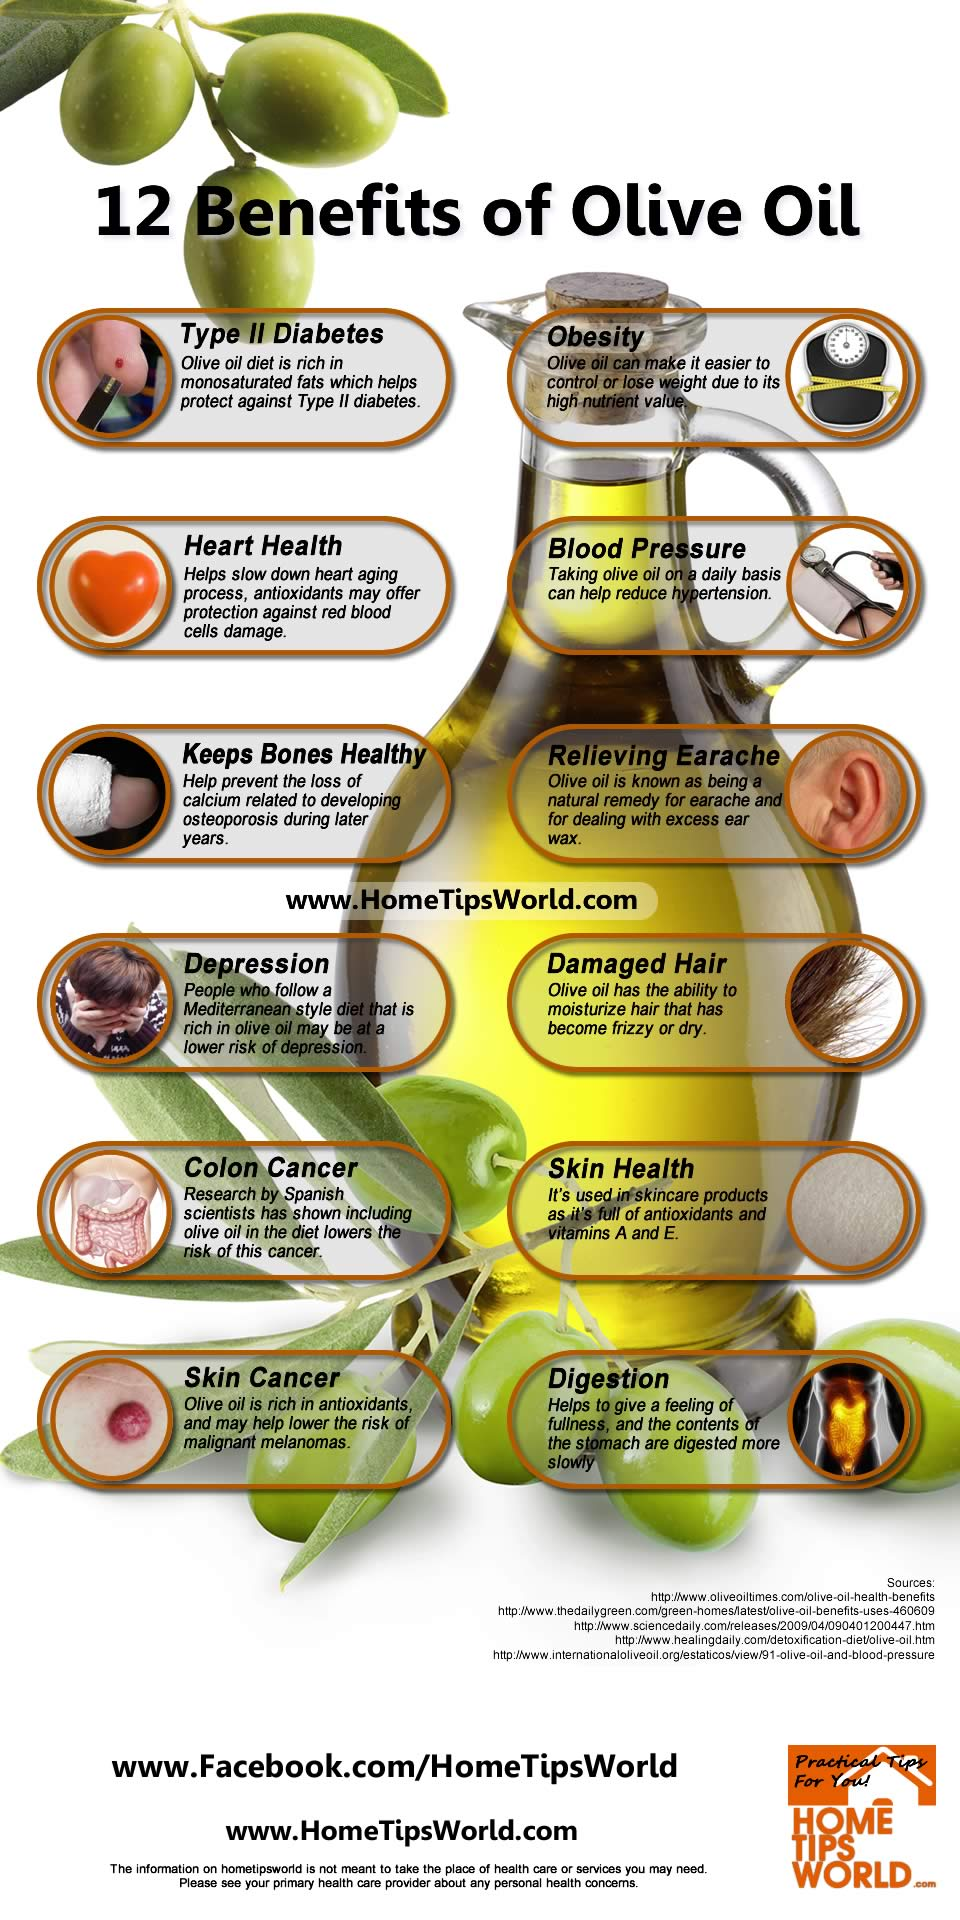 12 benefits of olive oil – olea oliva!®